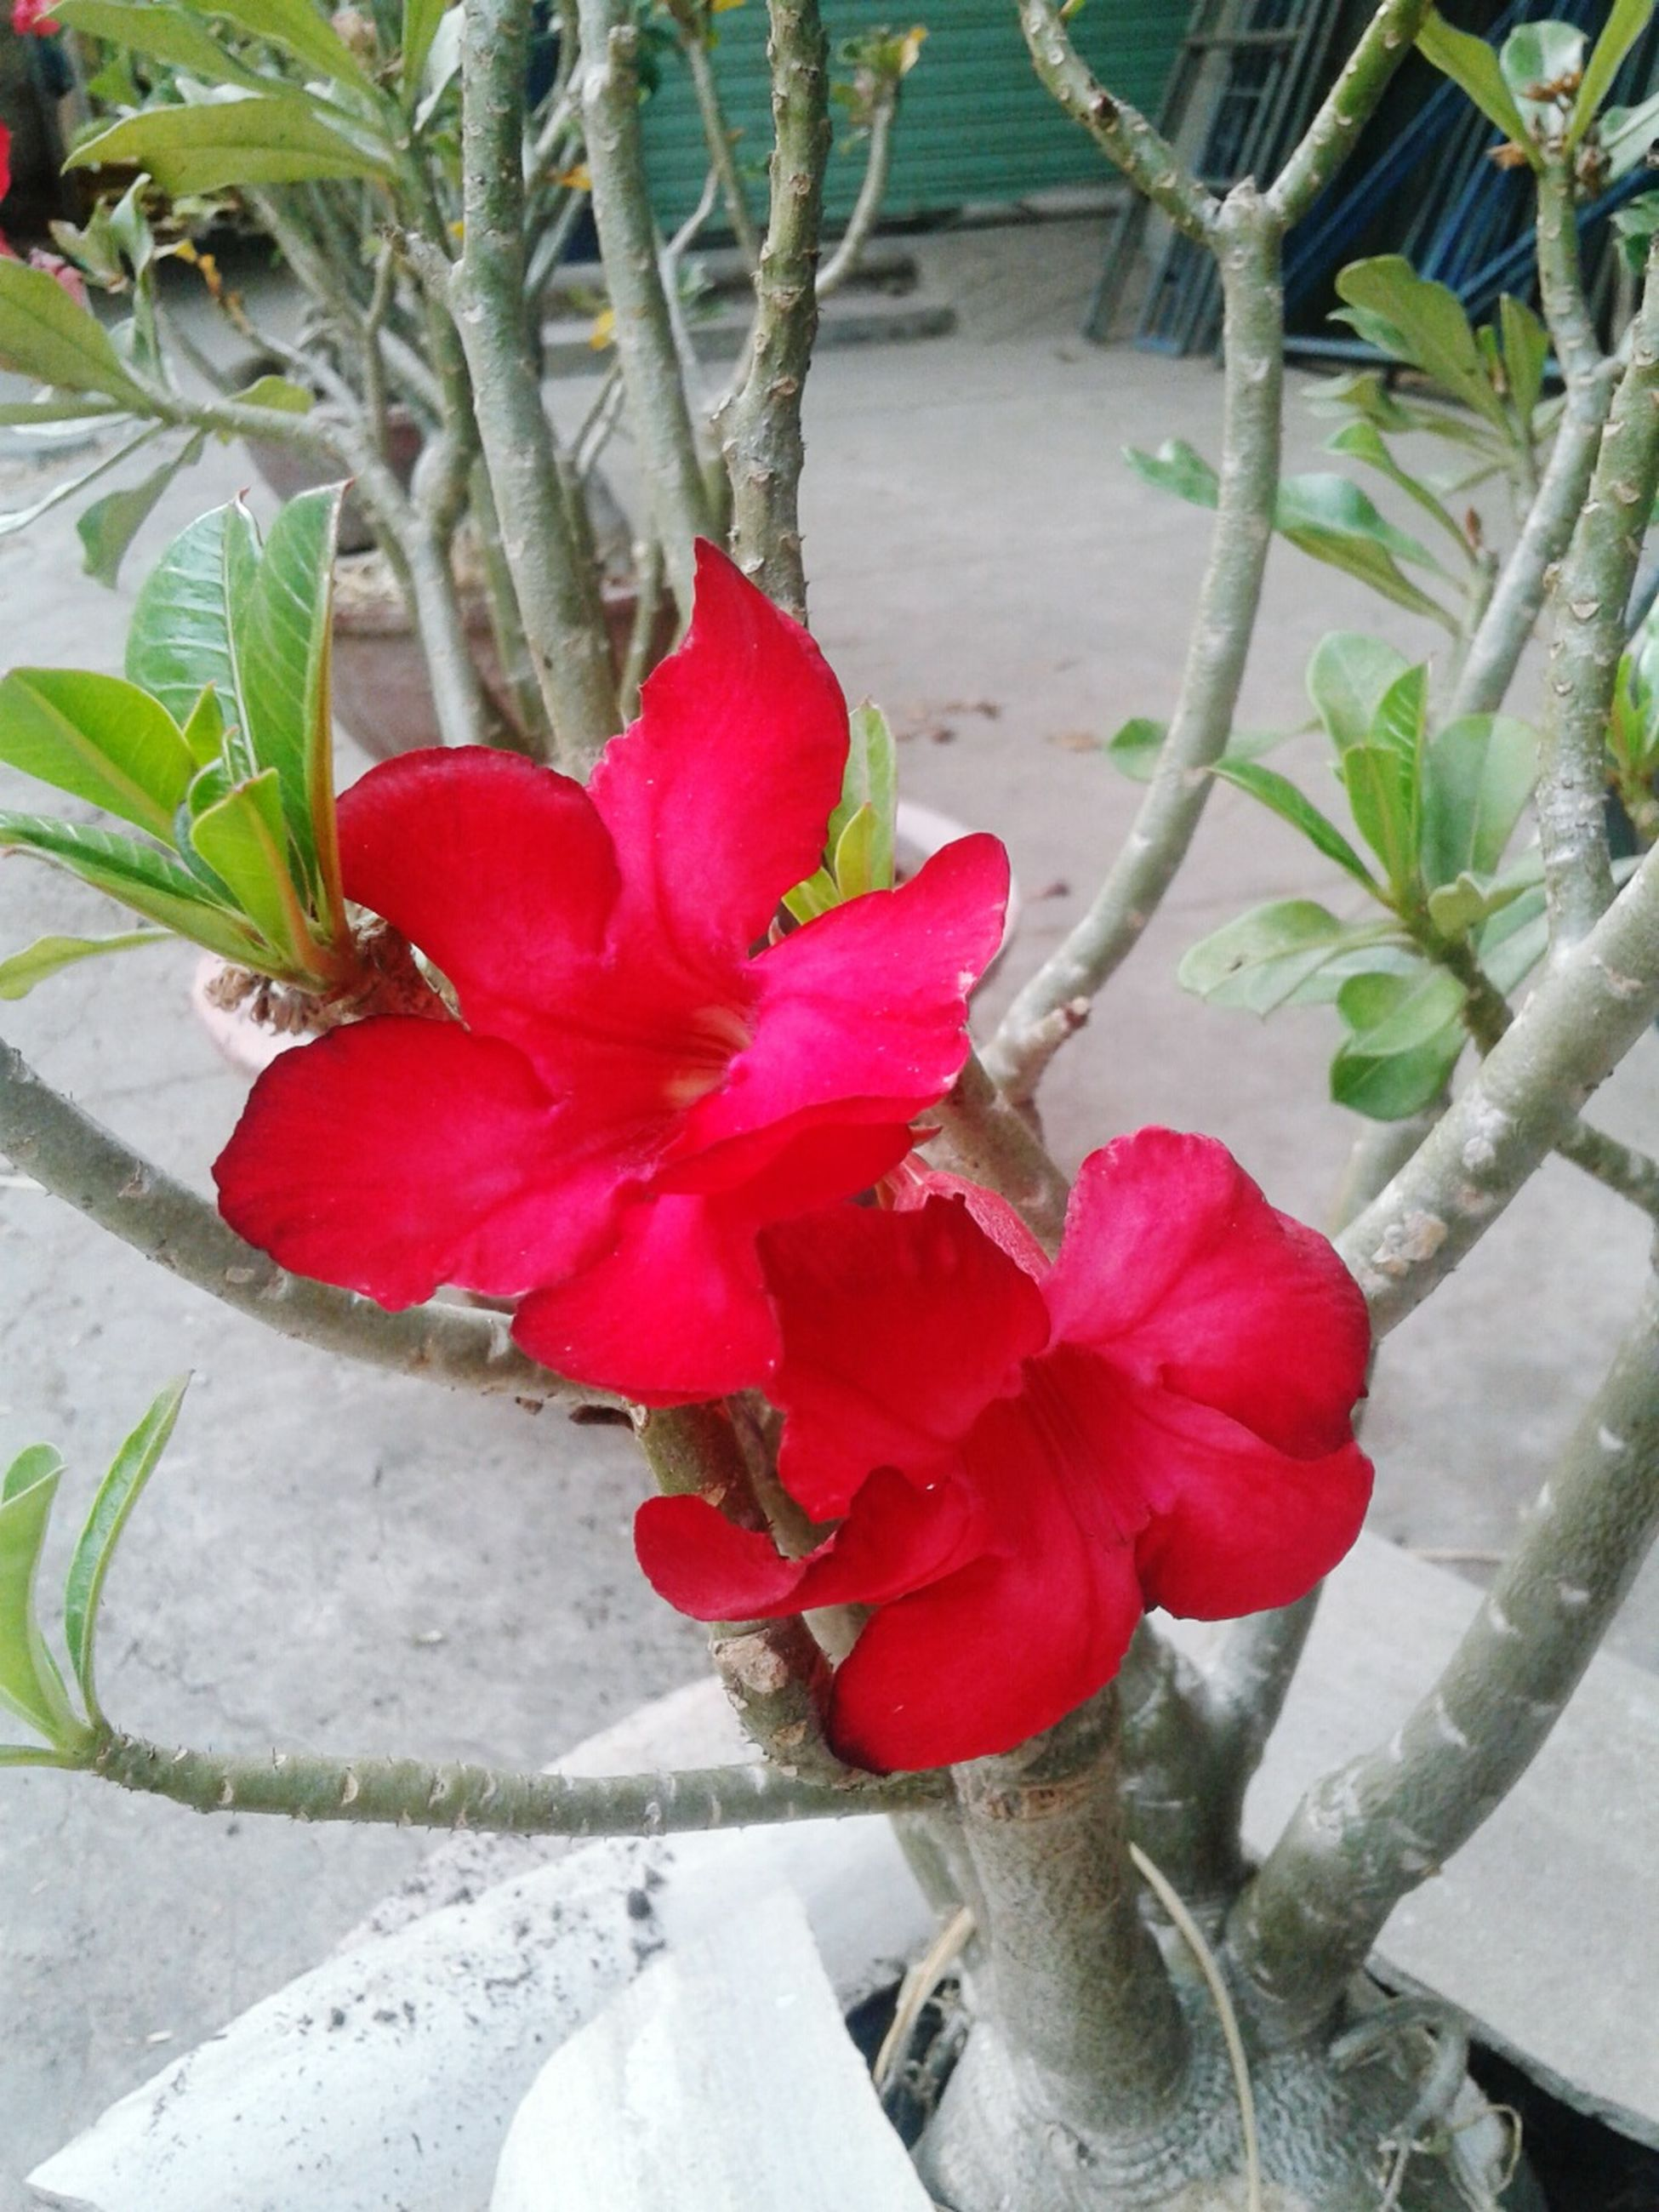 flower, growth, freshness, red, petal, plant, fragility, leaf, flower head, potted plant, beauty in nature, nature, blooming, high angle view, in bloom, close-up, sunlight, blossom, pink color, day